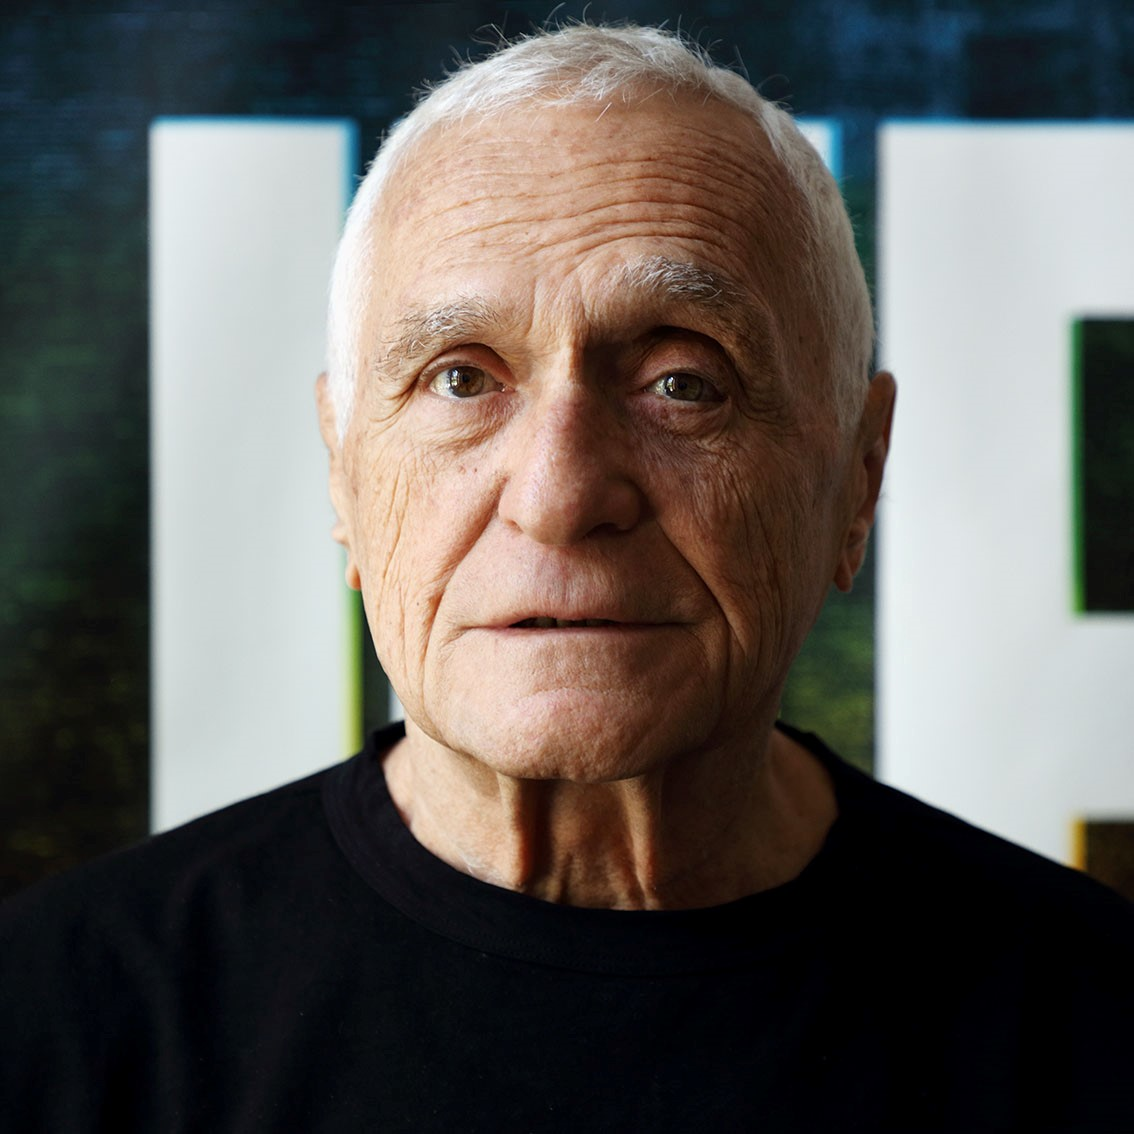 Remembering John Giorno Through His Poetic Art -